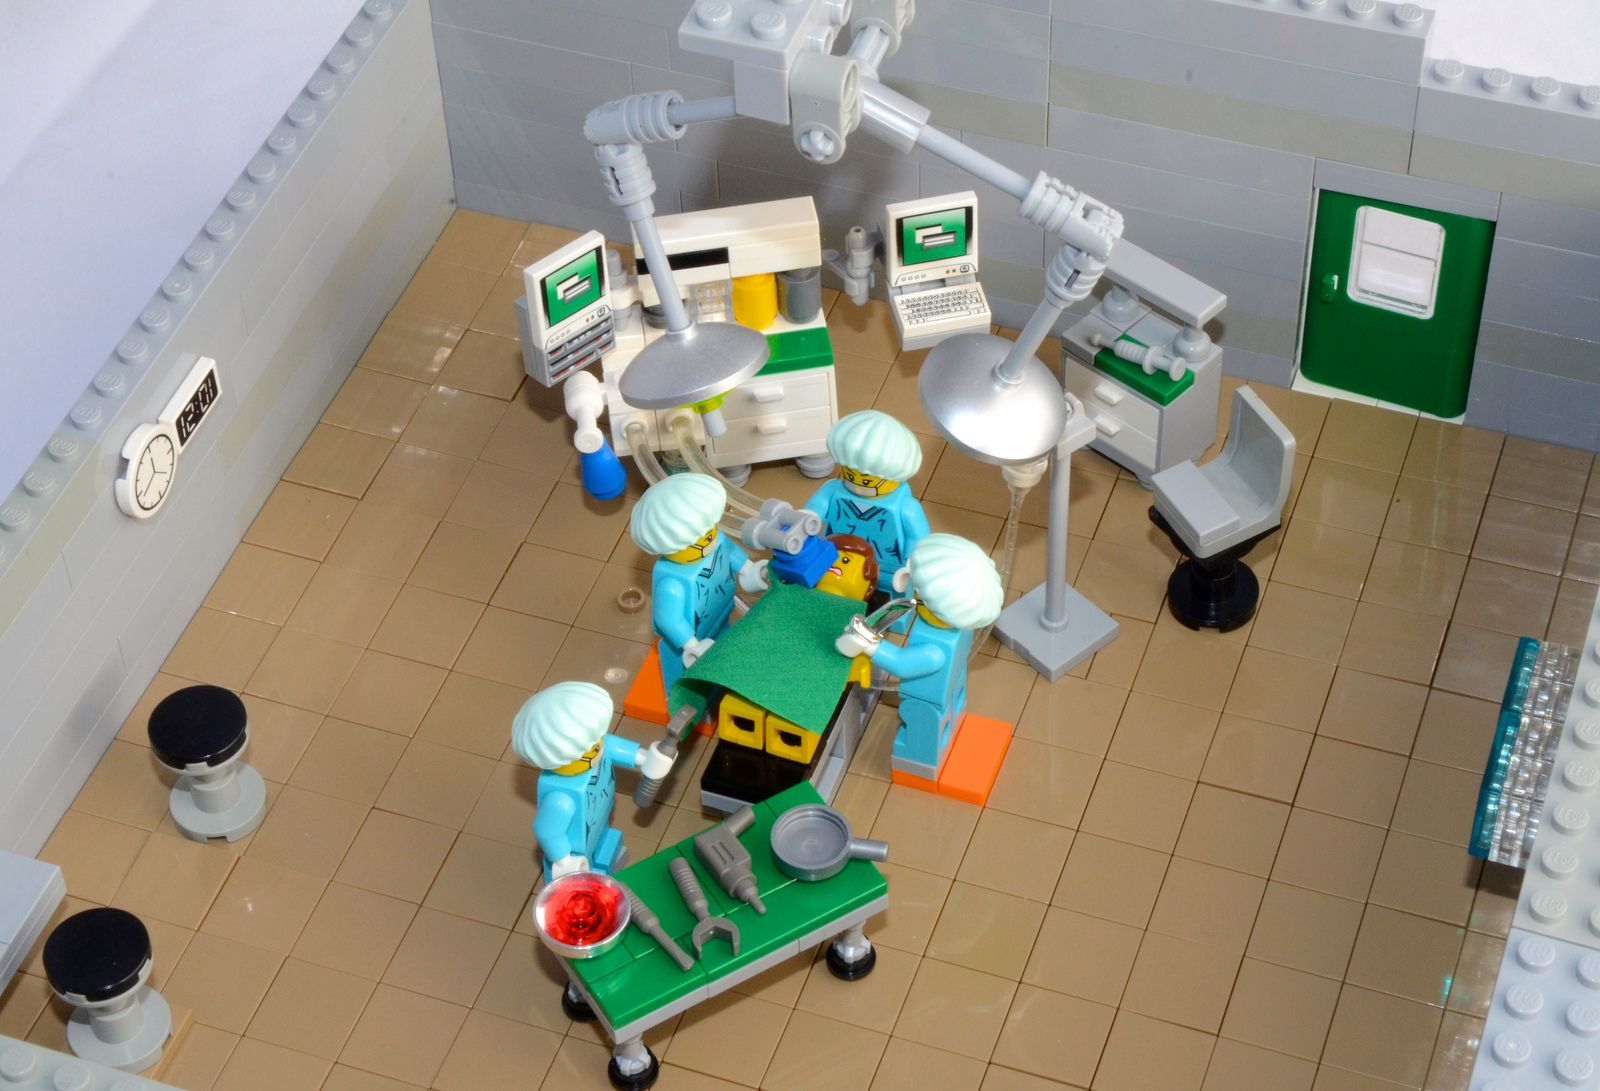 Lego Operating Room Moc 3 Lego Lego Lego Furniture Lego Hospital